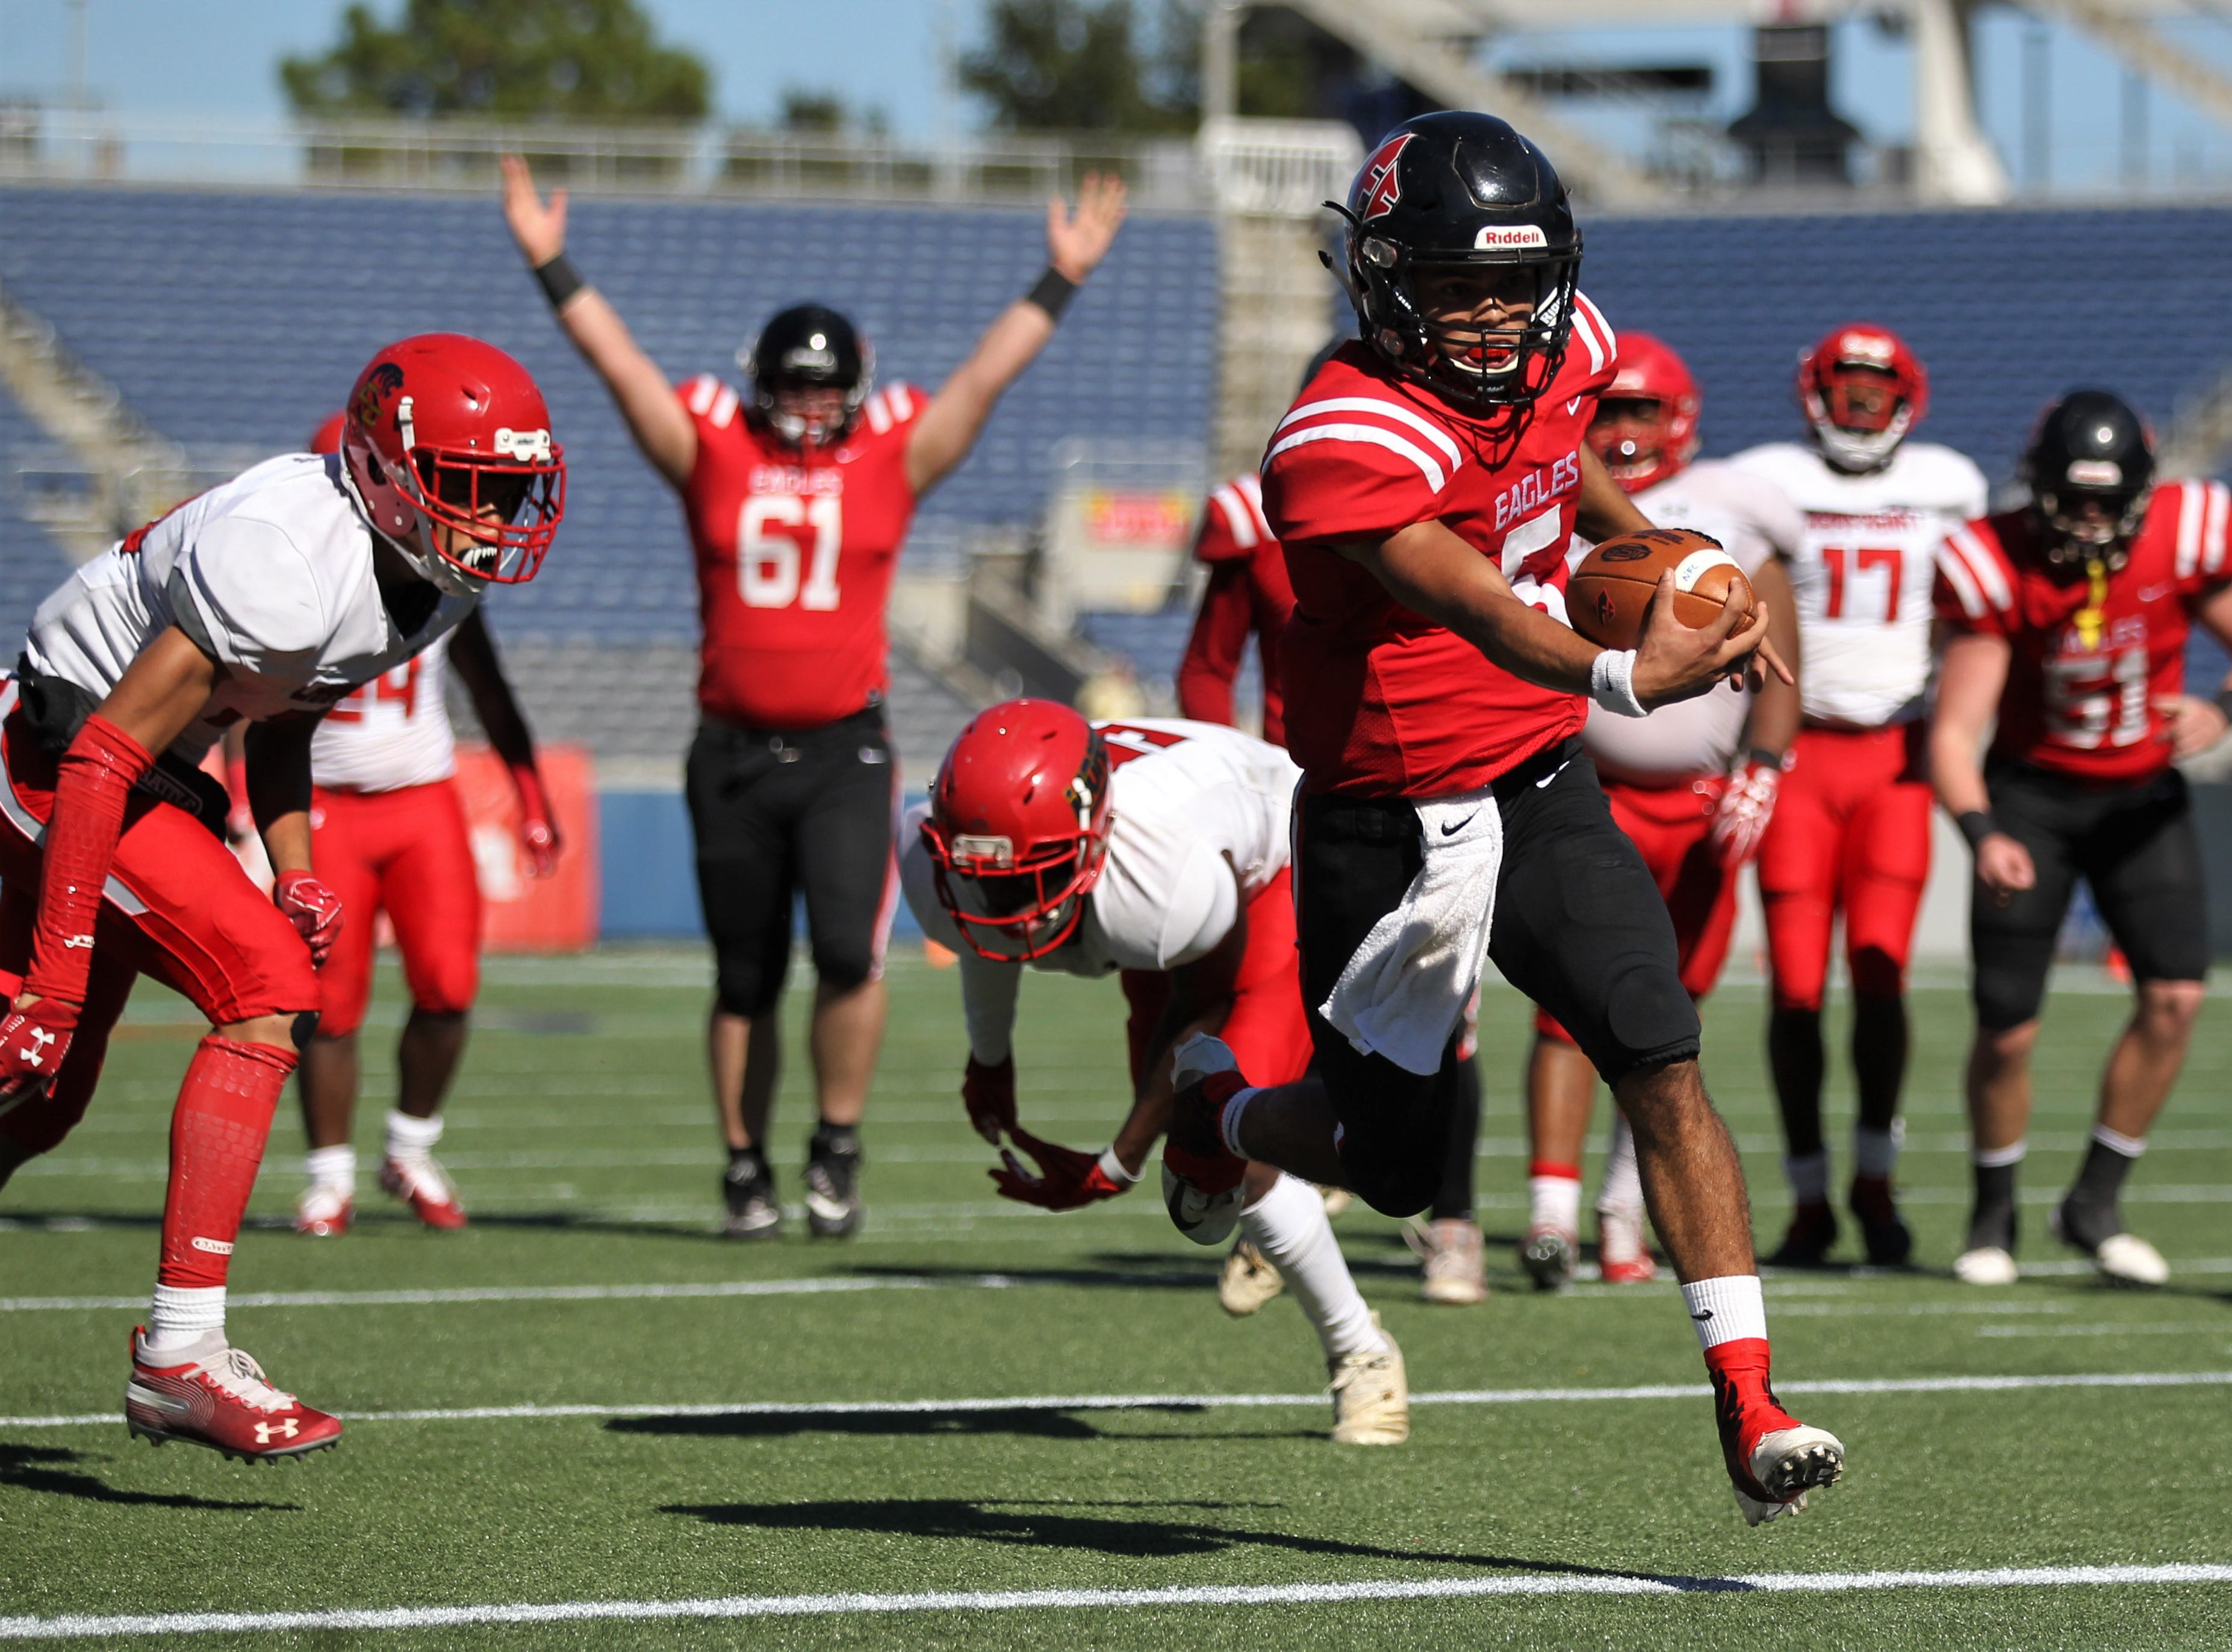 North Florida Christian senior quarterback J.D. Jerry escapes Champagnat Catholic tacklers to score a a crucial touchdown that helped the Eagles win 28-20 and capture a Class 2A state championship on Friday, Dec. 7, 2018.